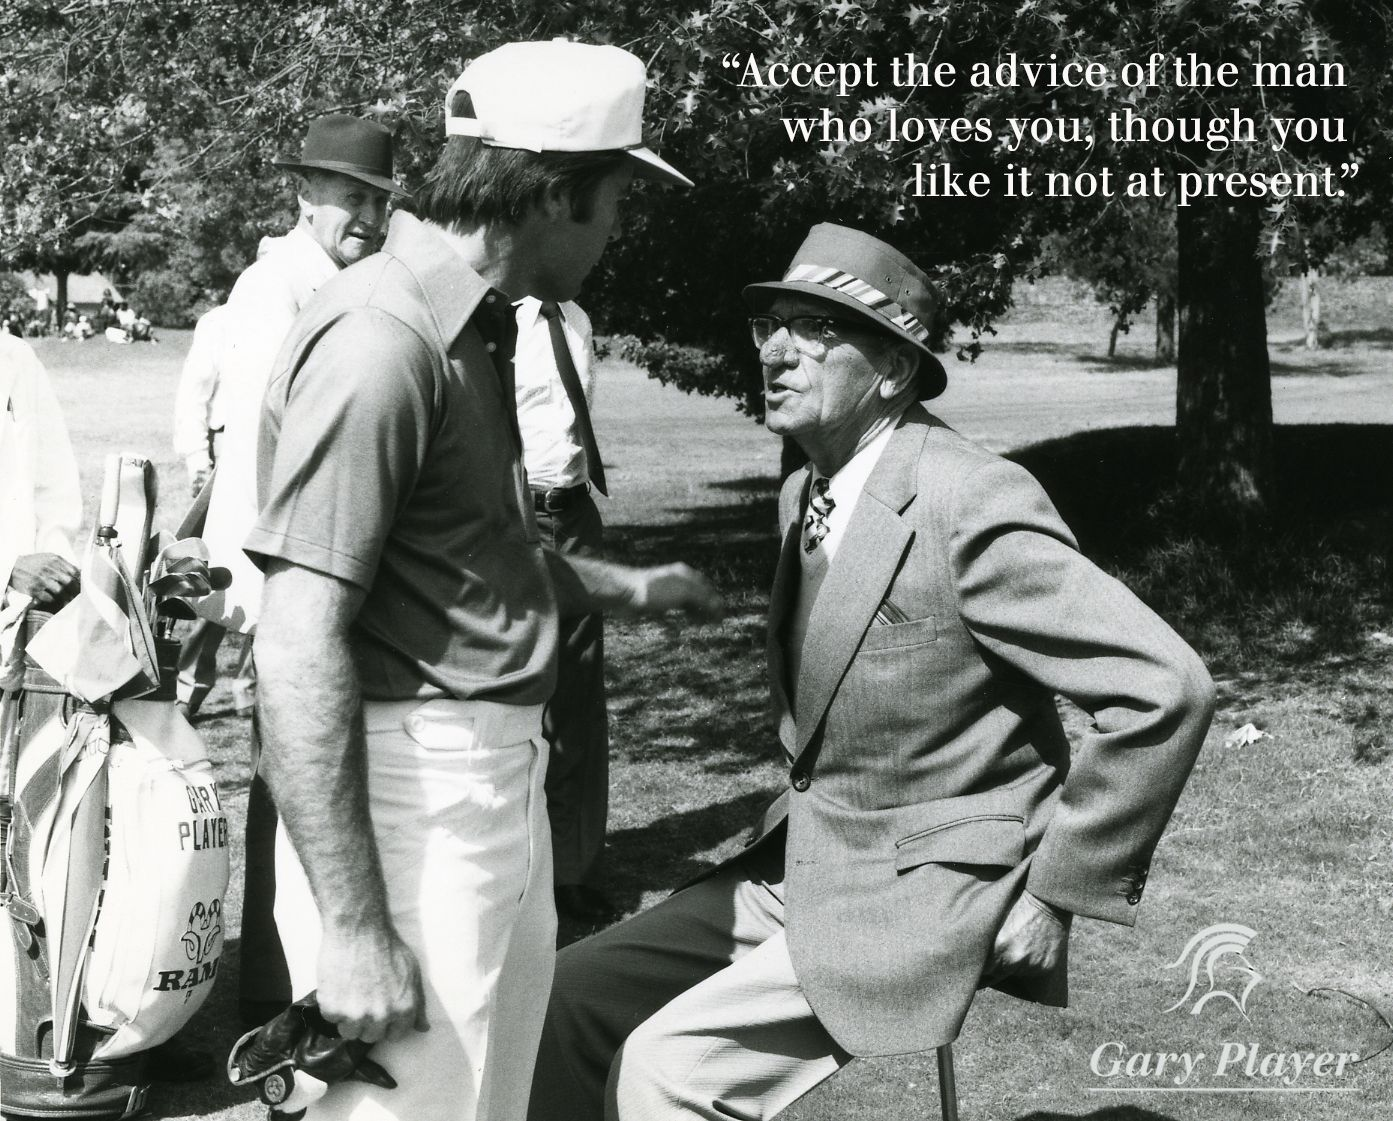 Gary Player and father Harry Player Blackest knight